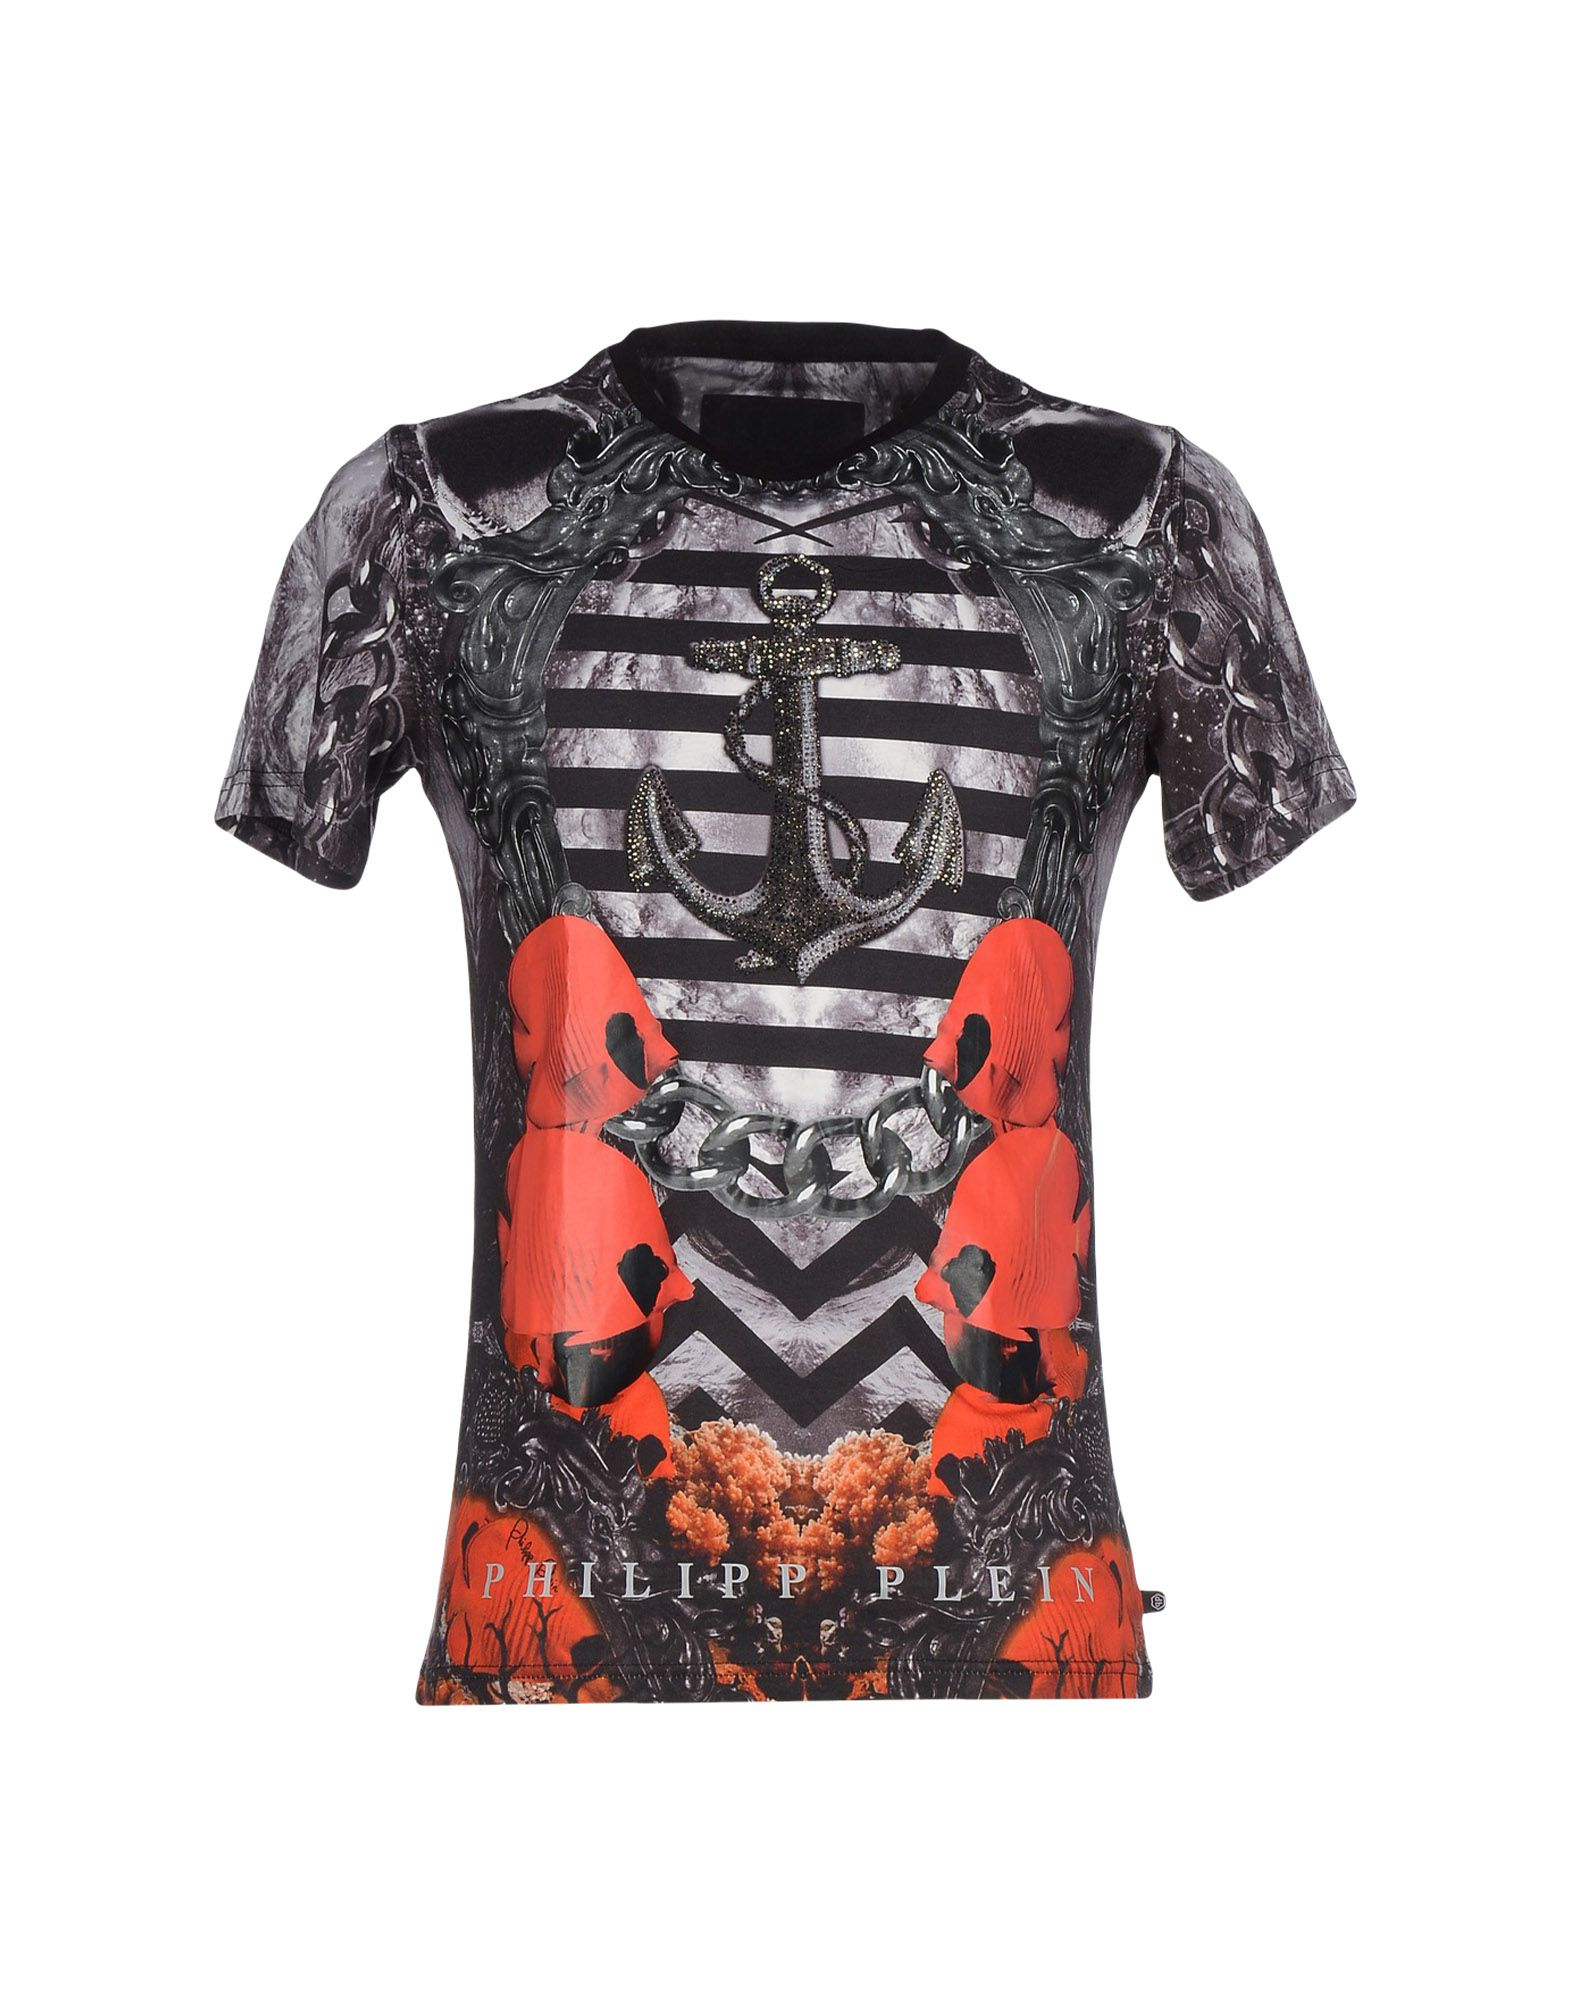 lyst philipp plein t shirt in black for men. Black Bedroom Furniture Sets. Home Design Ideas